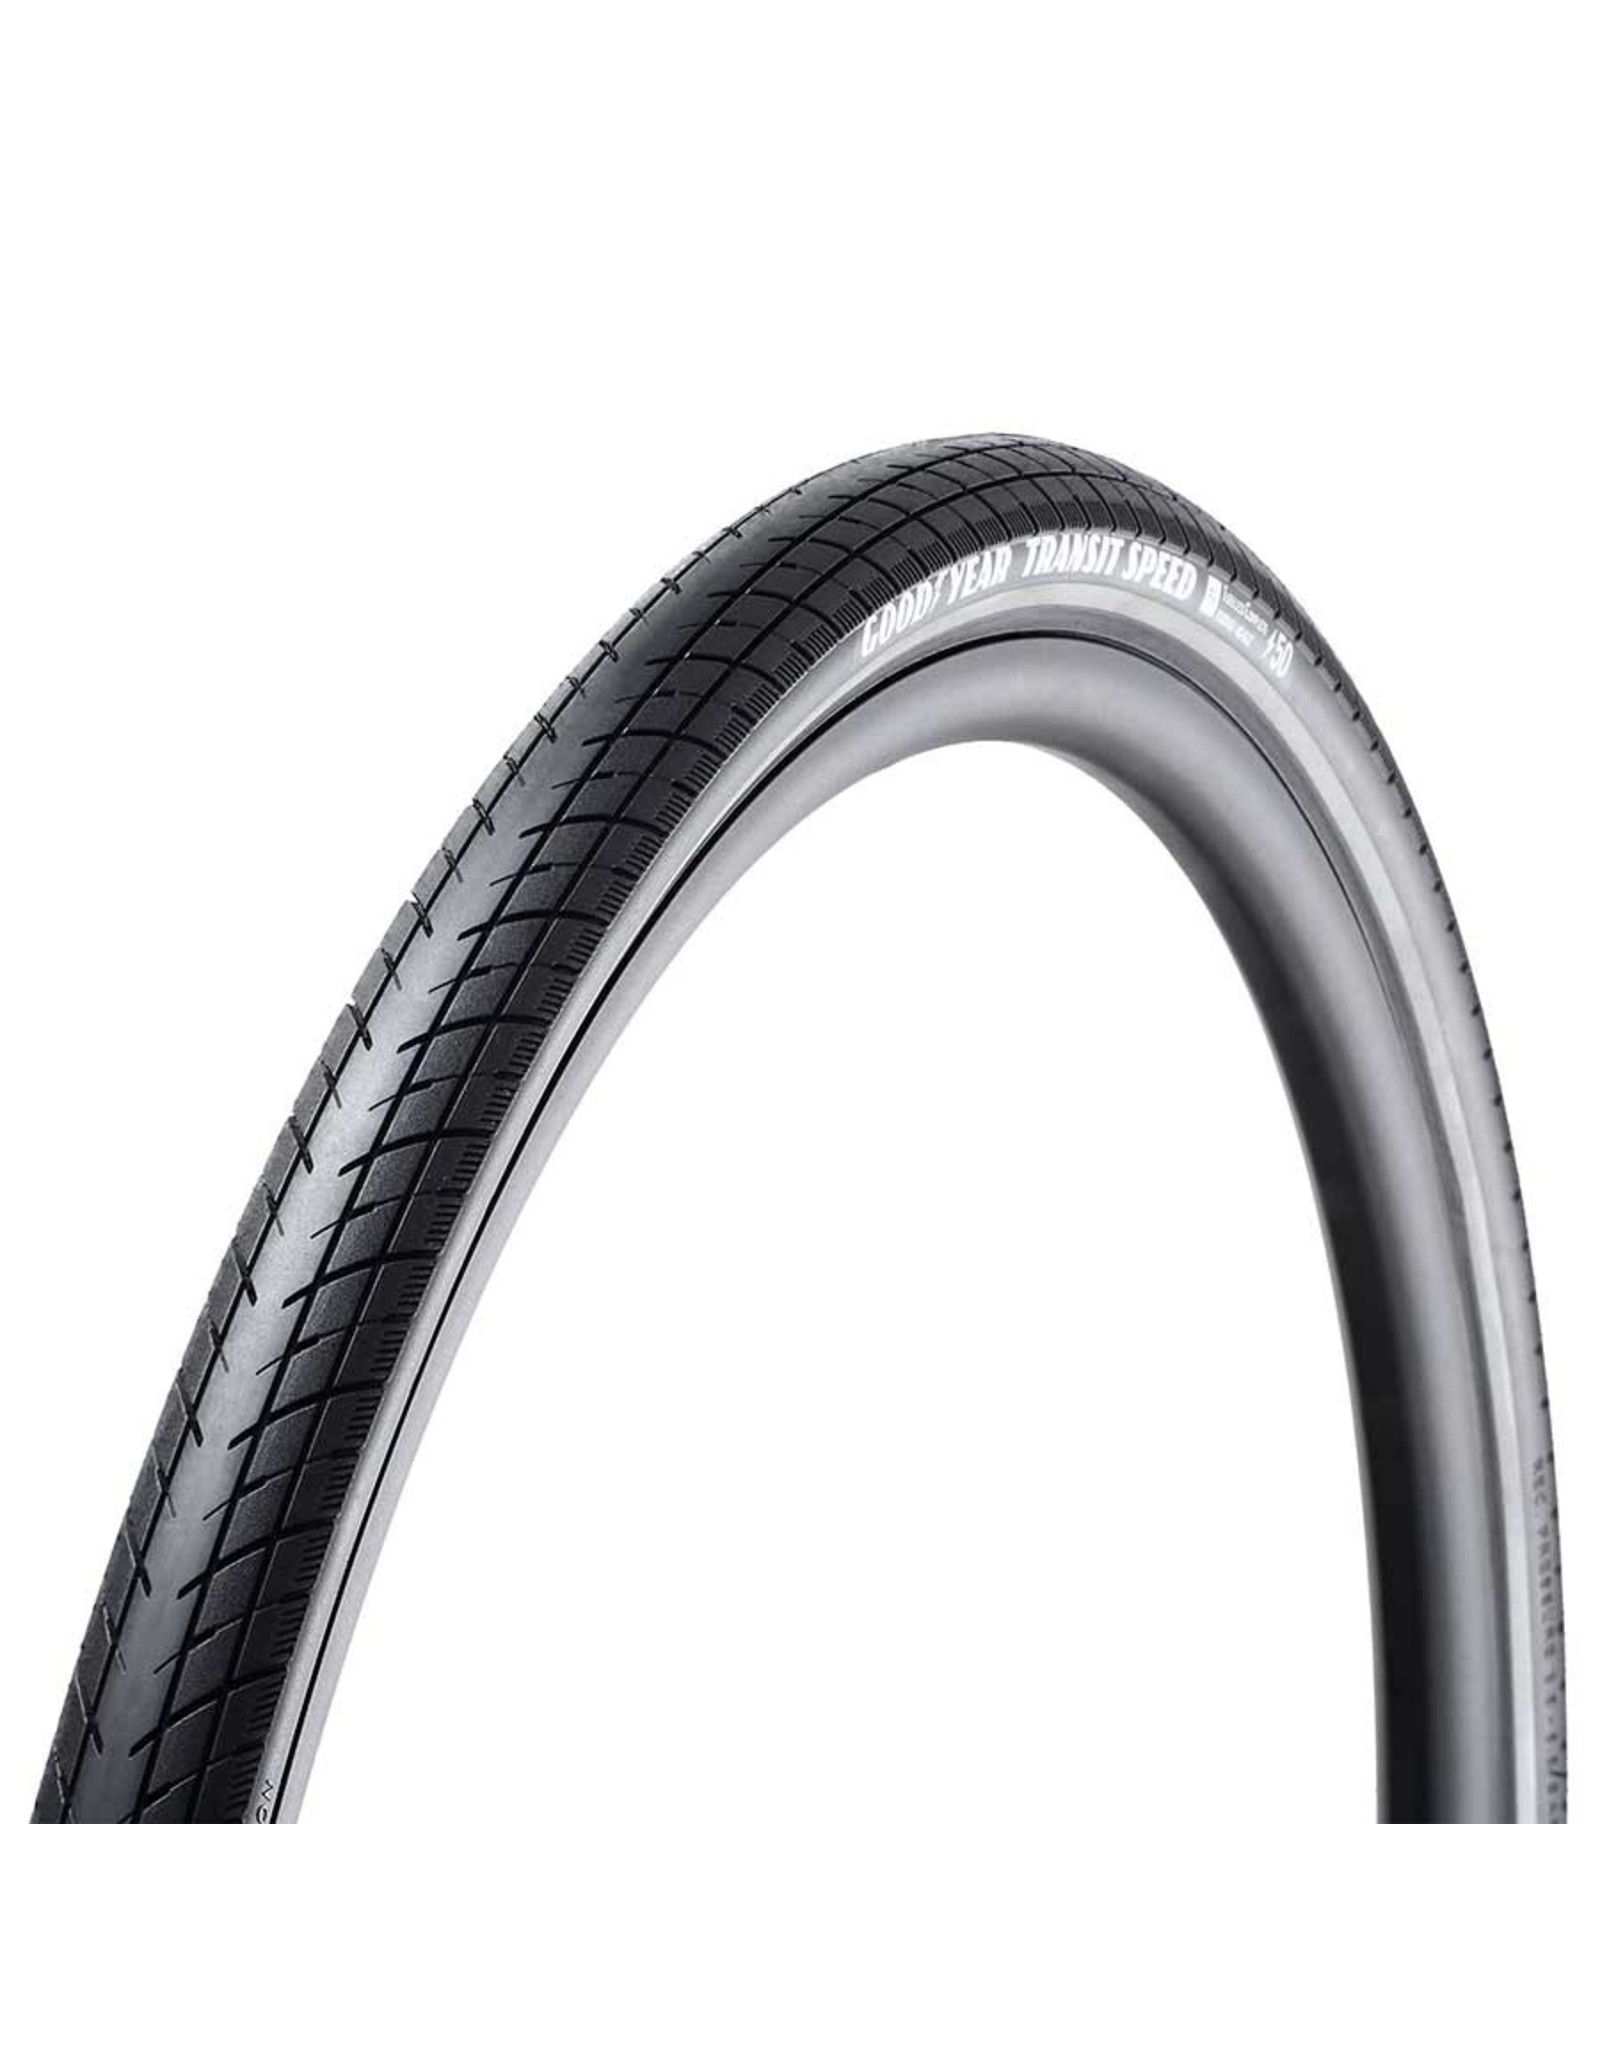 Goodyear Goodyear, Transit Speed, Tire, 700x50C, Wire, Clincher, Dynamic:Silica4, S3: Shell, 60TPI, Black